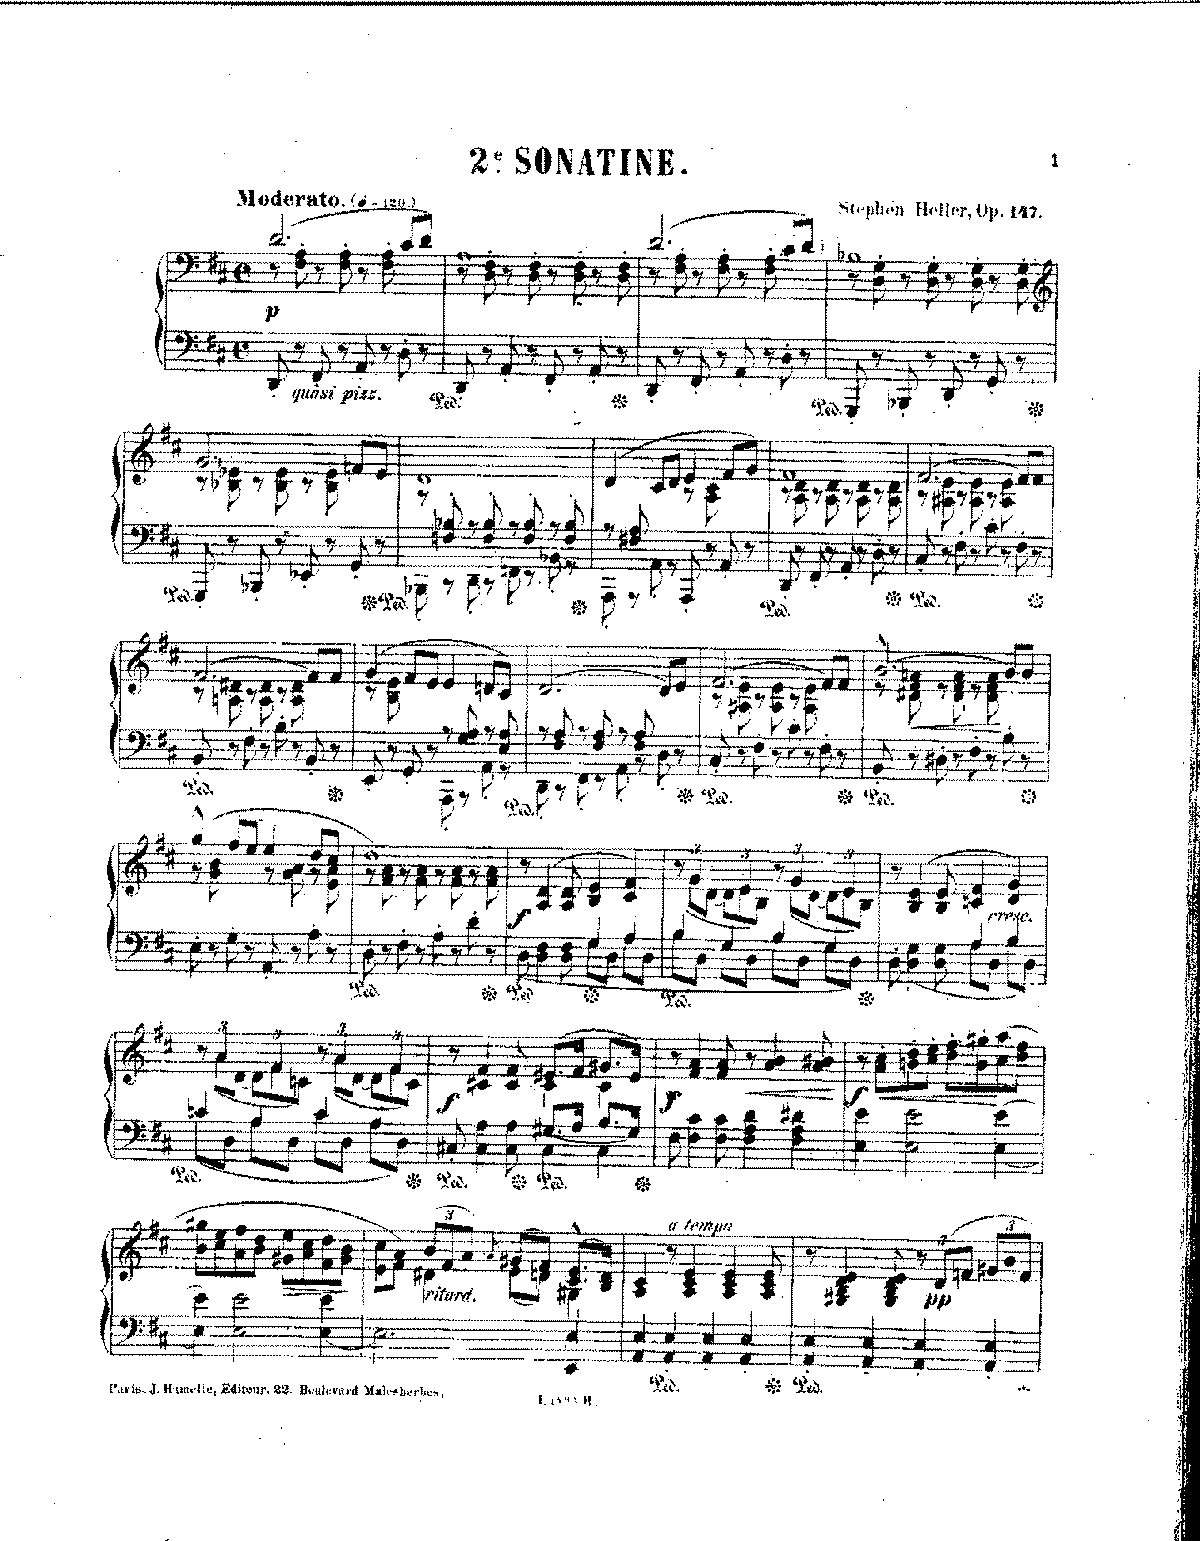 Heller - Op.147 - Sonatine No.2 in D Major.pdf